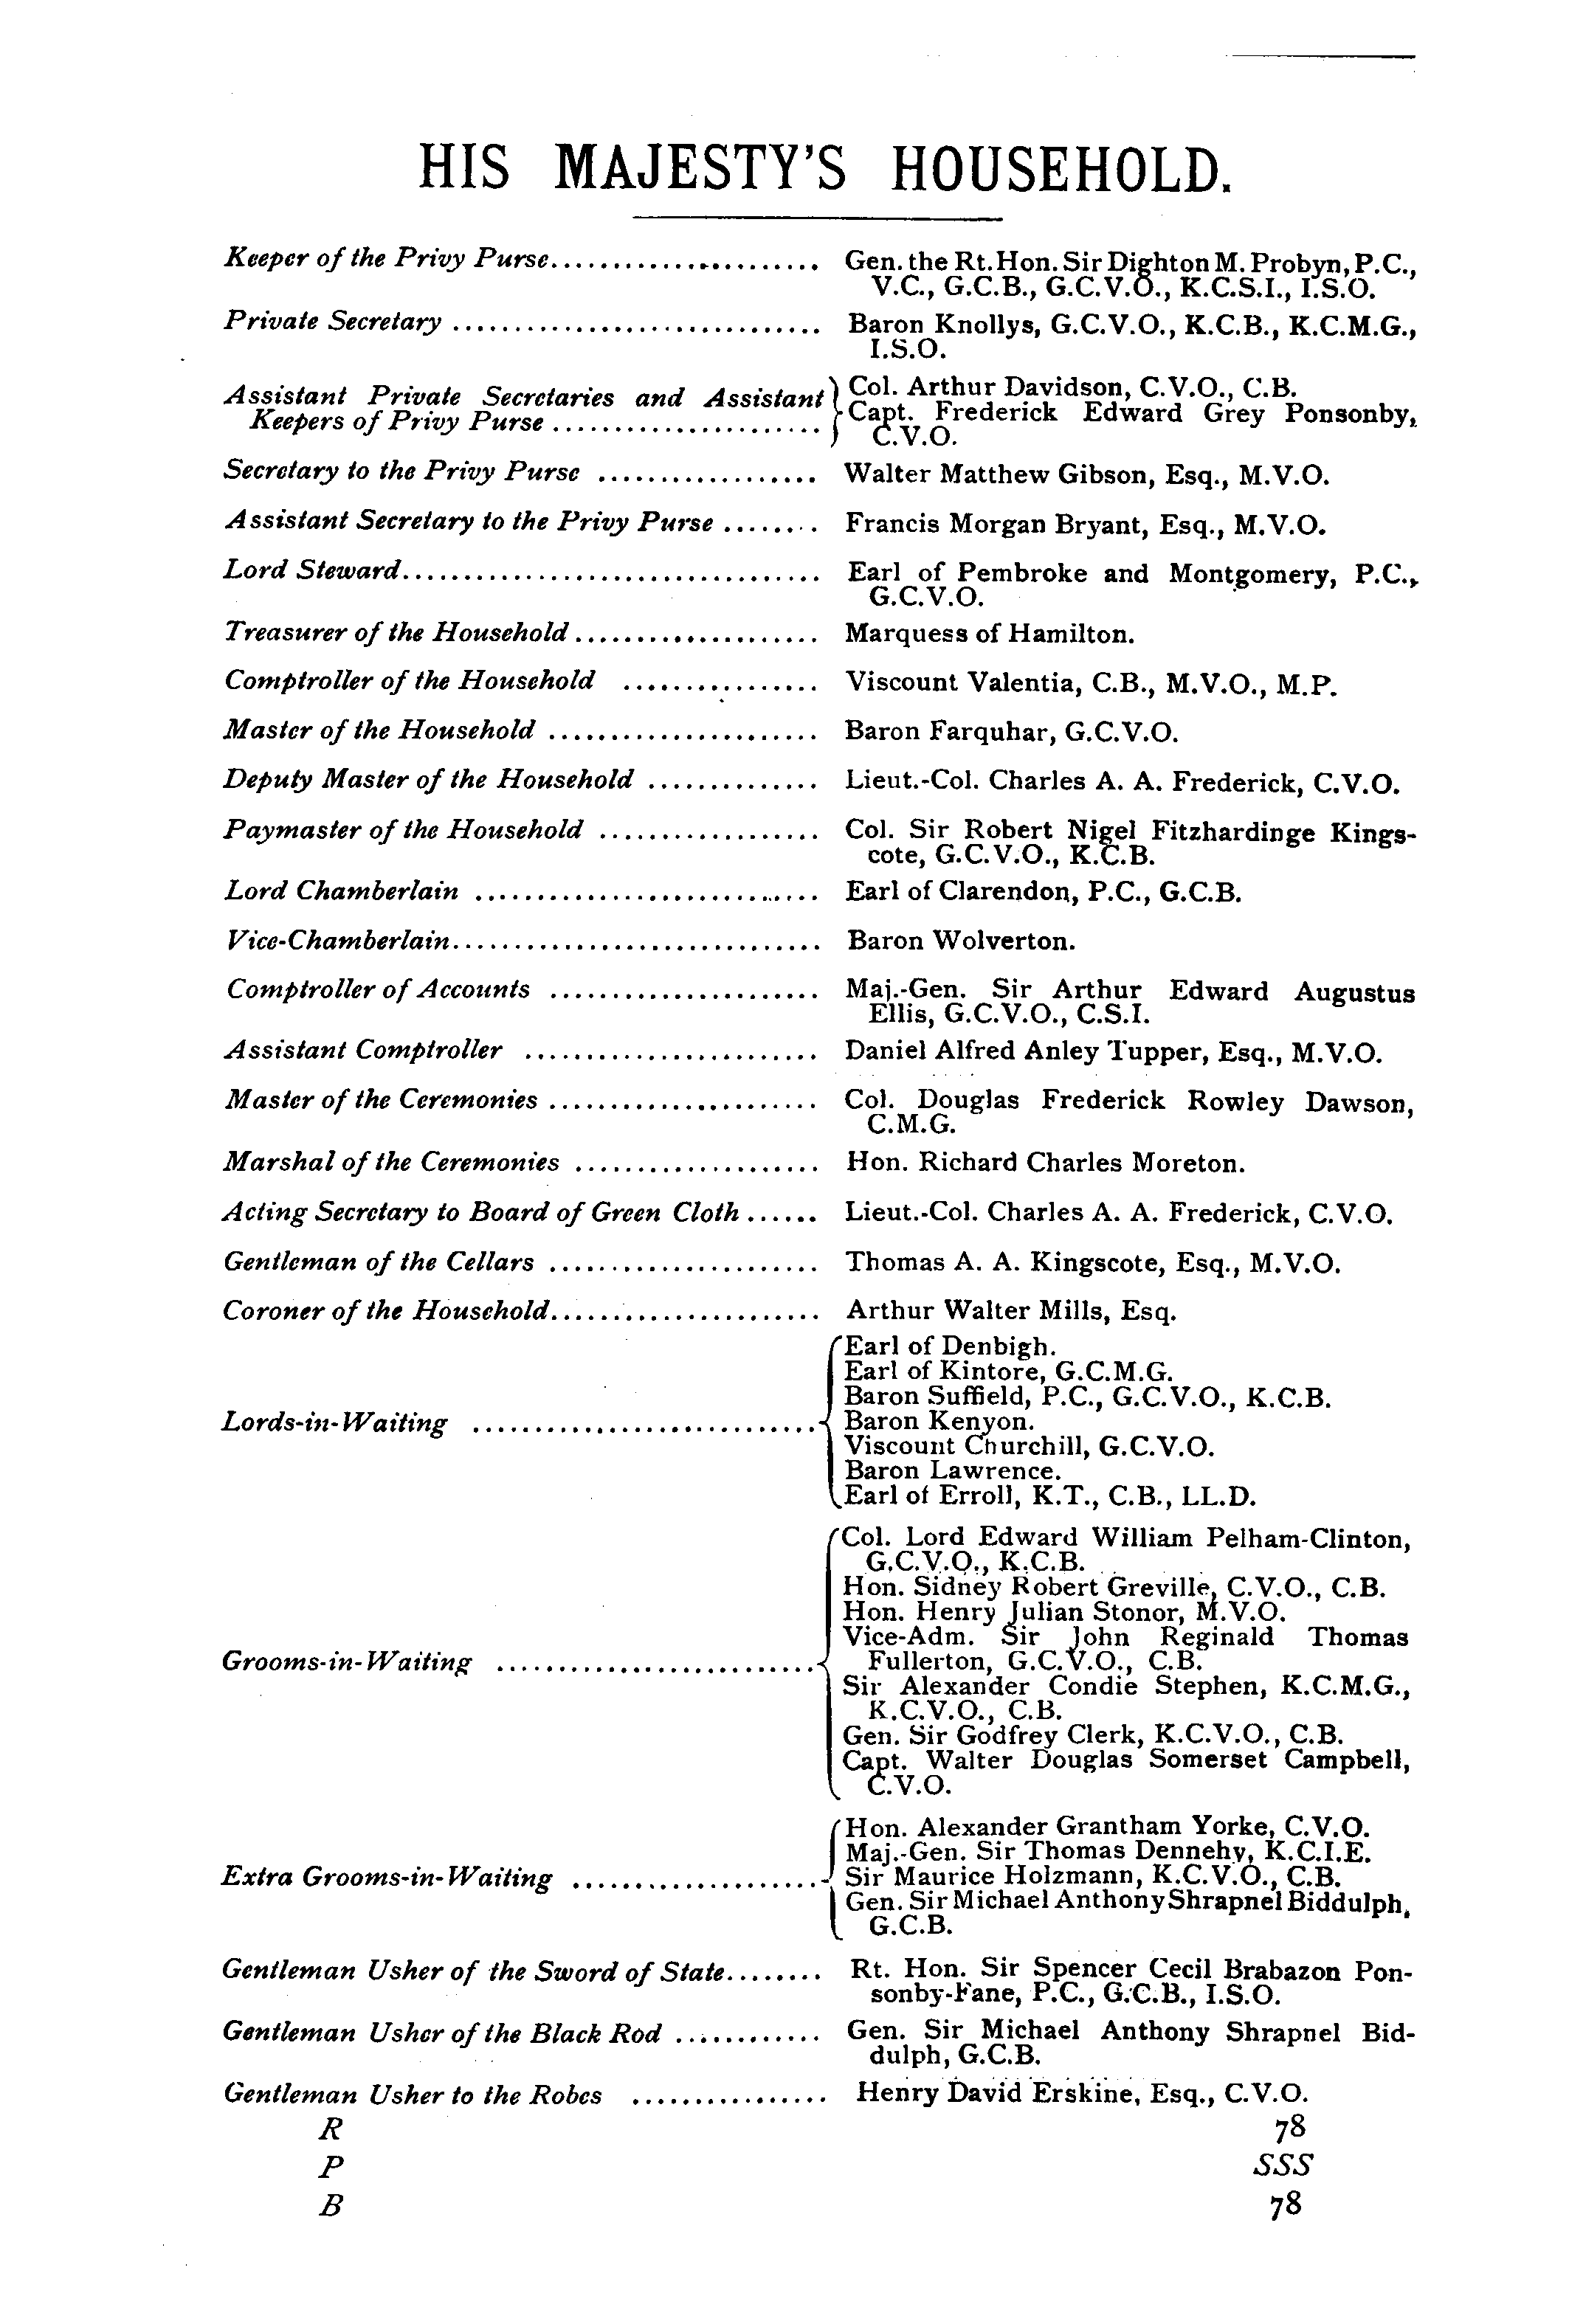 Debrett's Peerage, Baronetage, Knightage and Companionage, 1904 page 1233 - click to open larger version in a new window